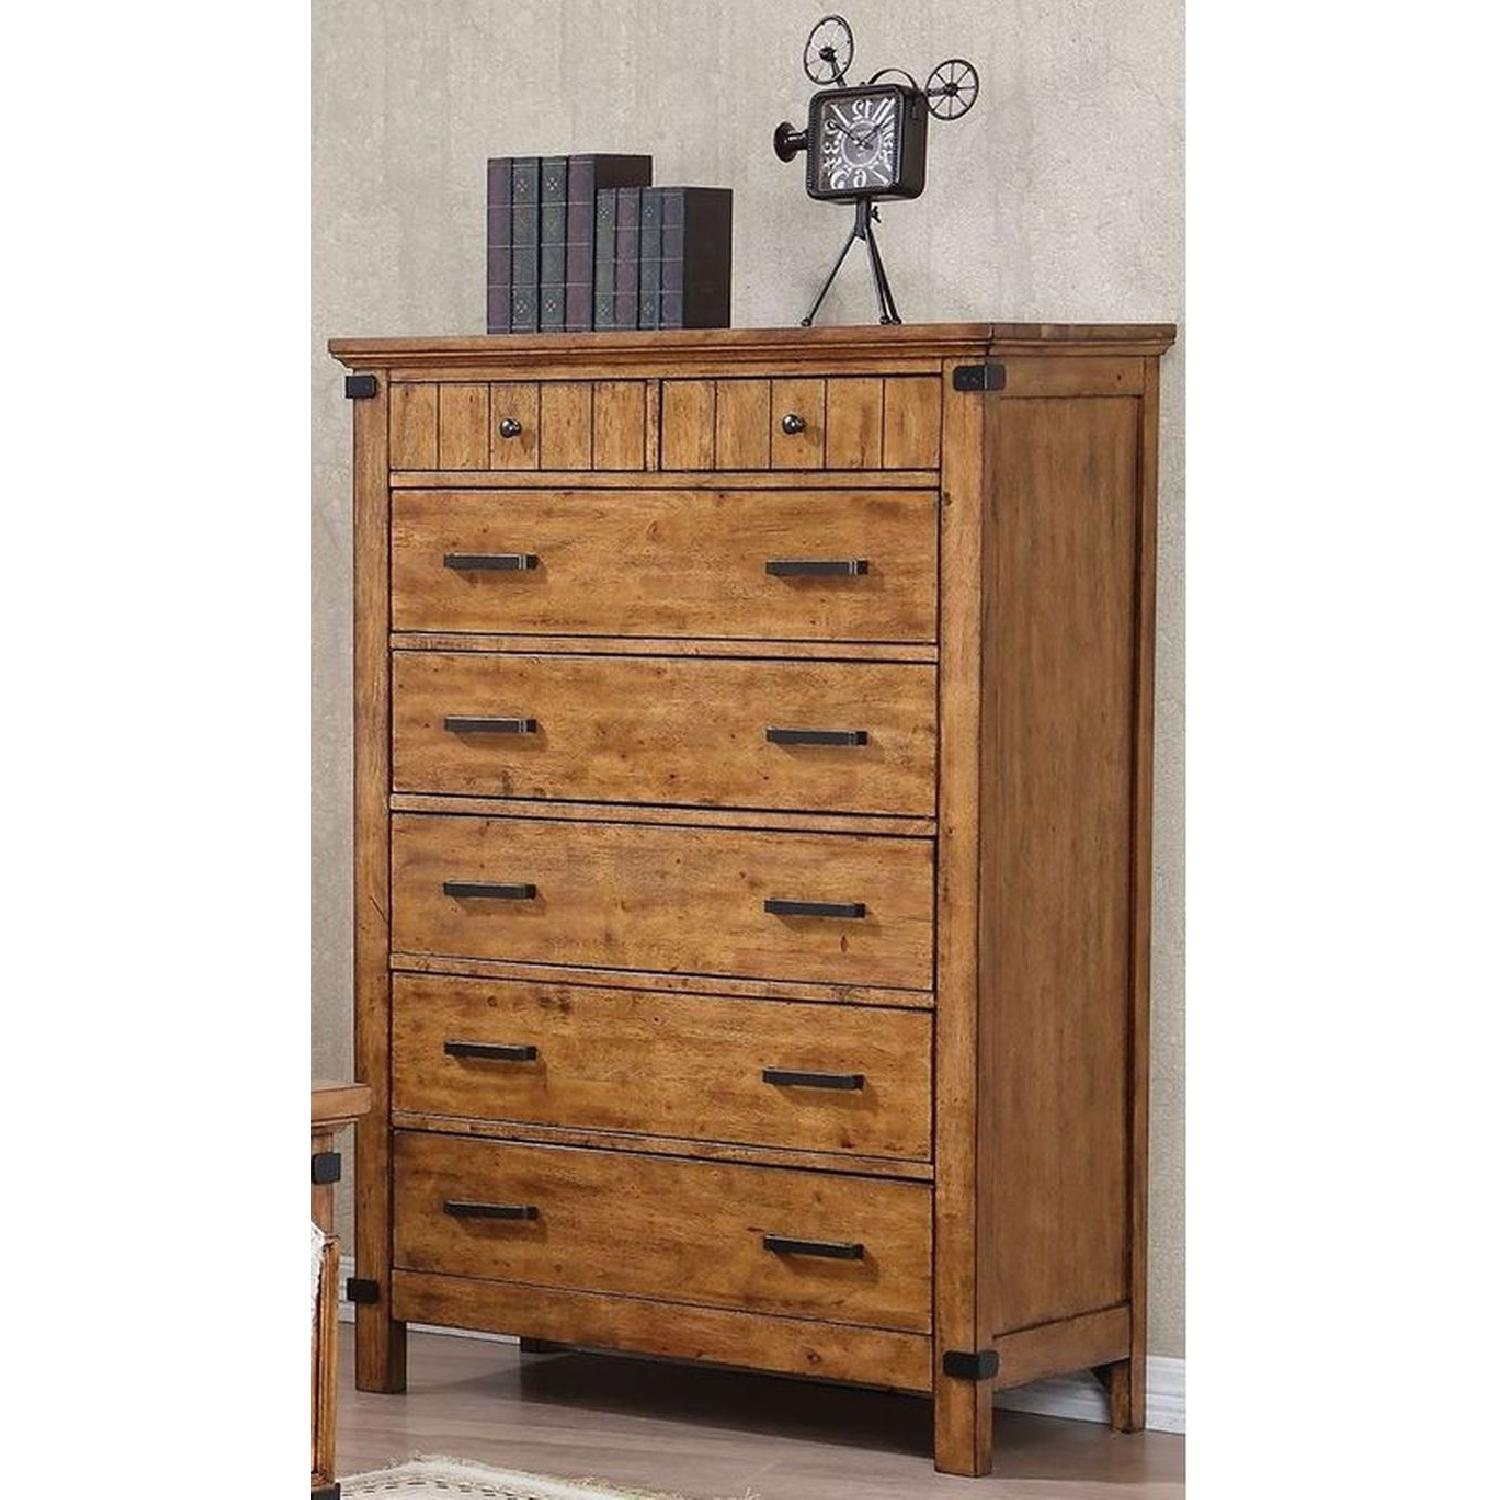 Rustic Style Chest in Warm Honey Brown Finish - image-3